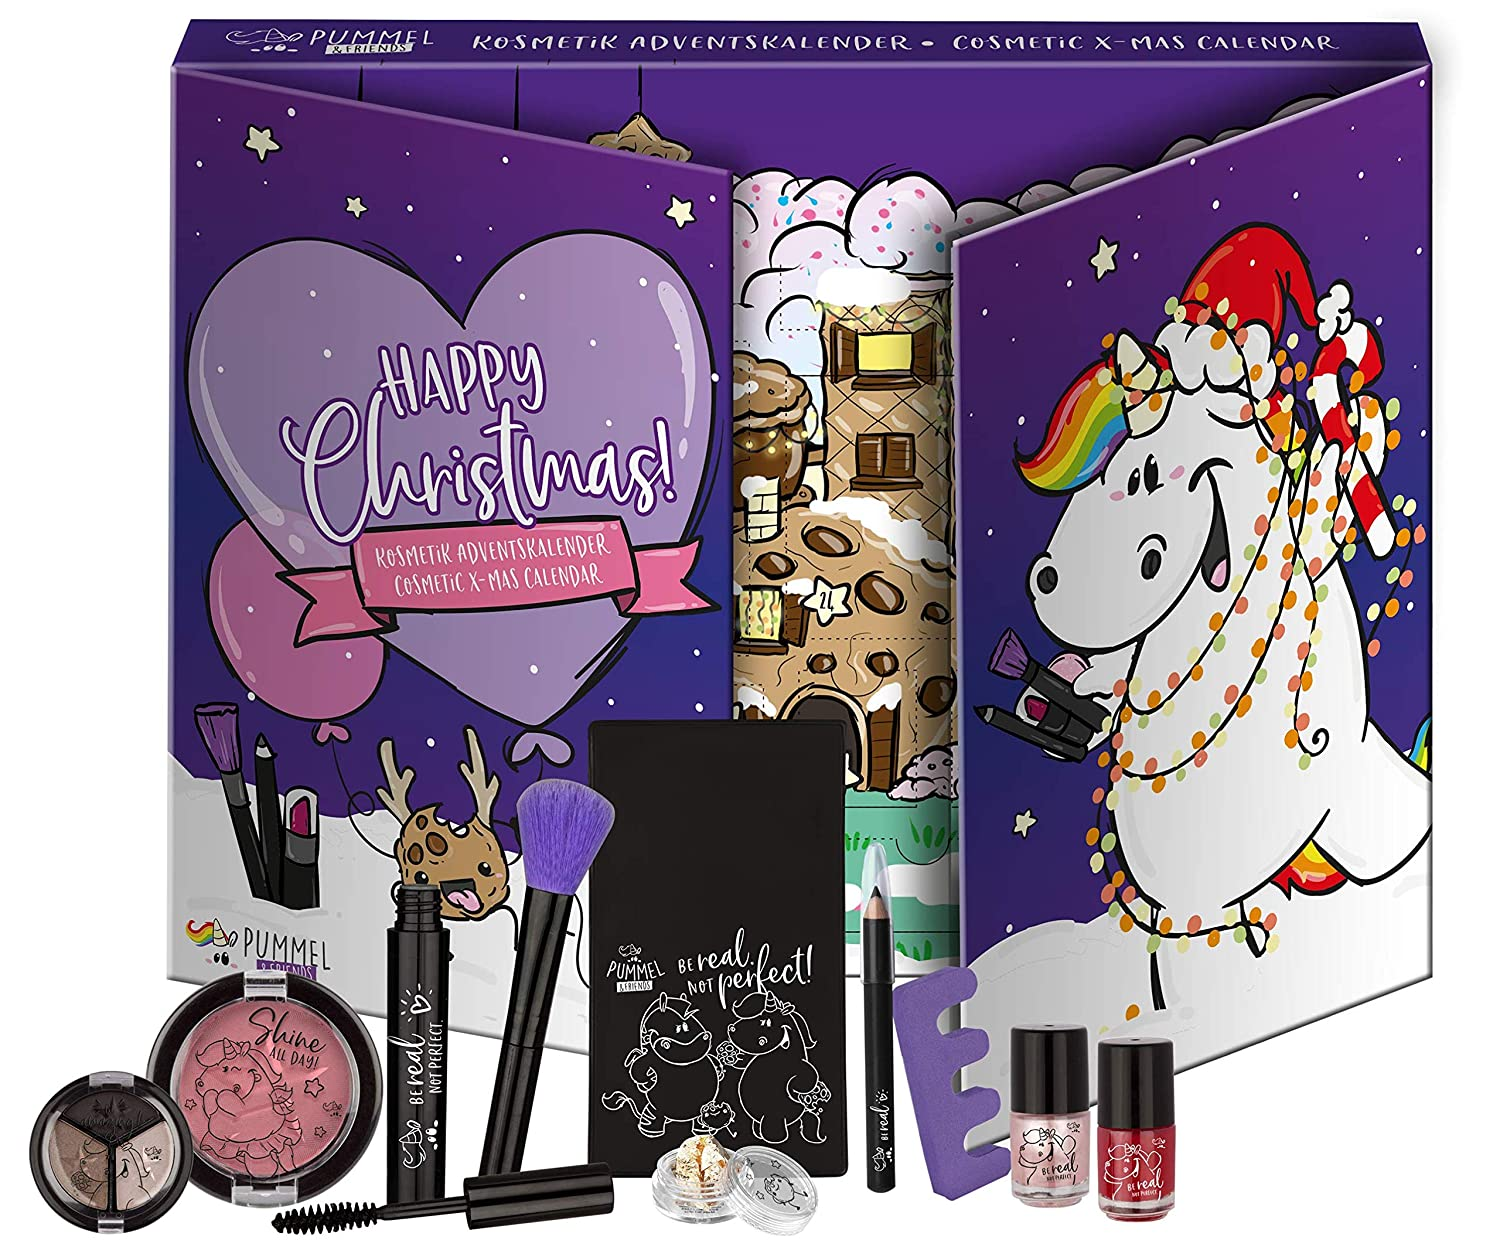 Kosmetik-Adventskalender Offizielles Lizenzprodukt 24 St/ück Pummel /& Friends Pummel /& Friends Beauty Advent Calendar